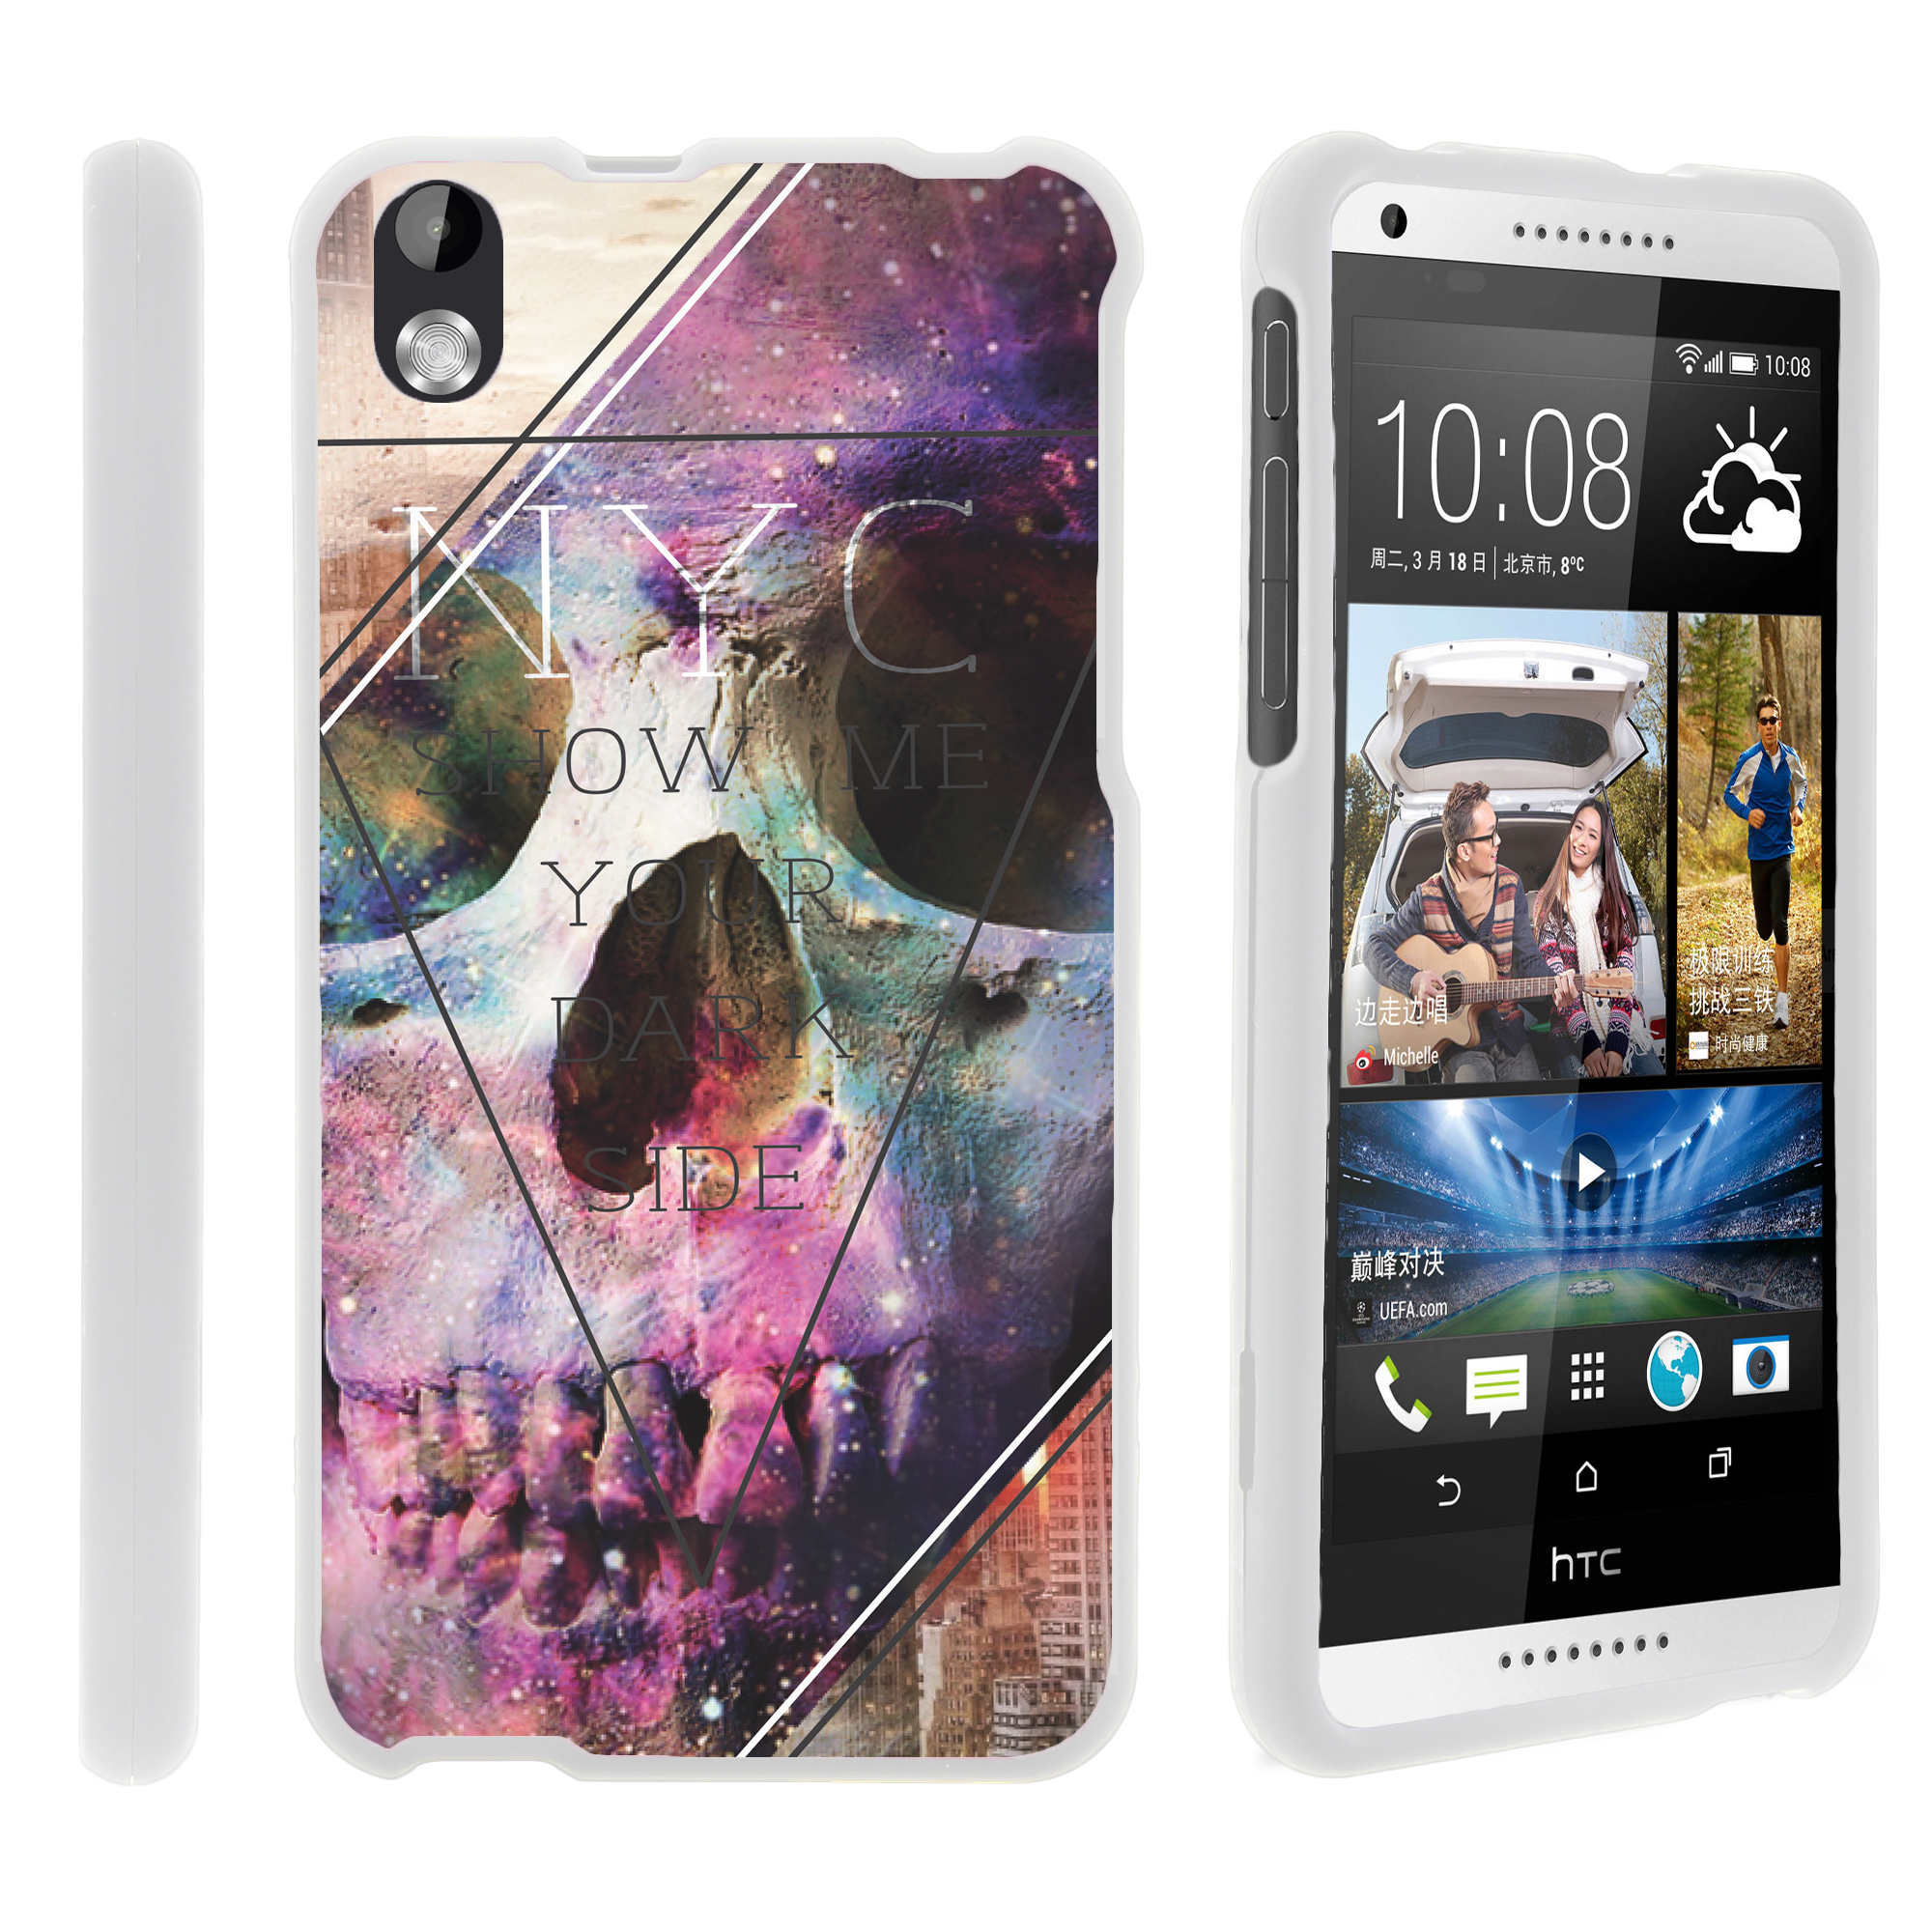 HTC Desire 816, [SNAP SHELL][White] 2 Piece Snap On Rubberized Hard White Plastic Cell Phone Case with Exclusive Art - Your Dark Side